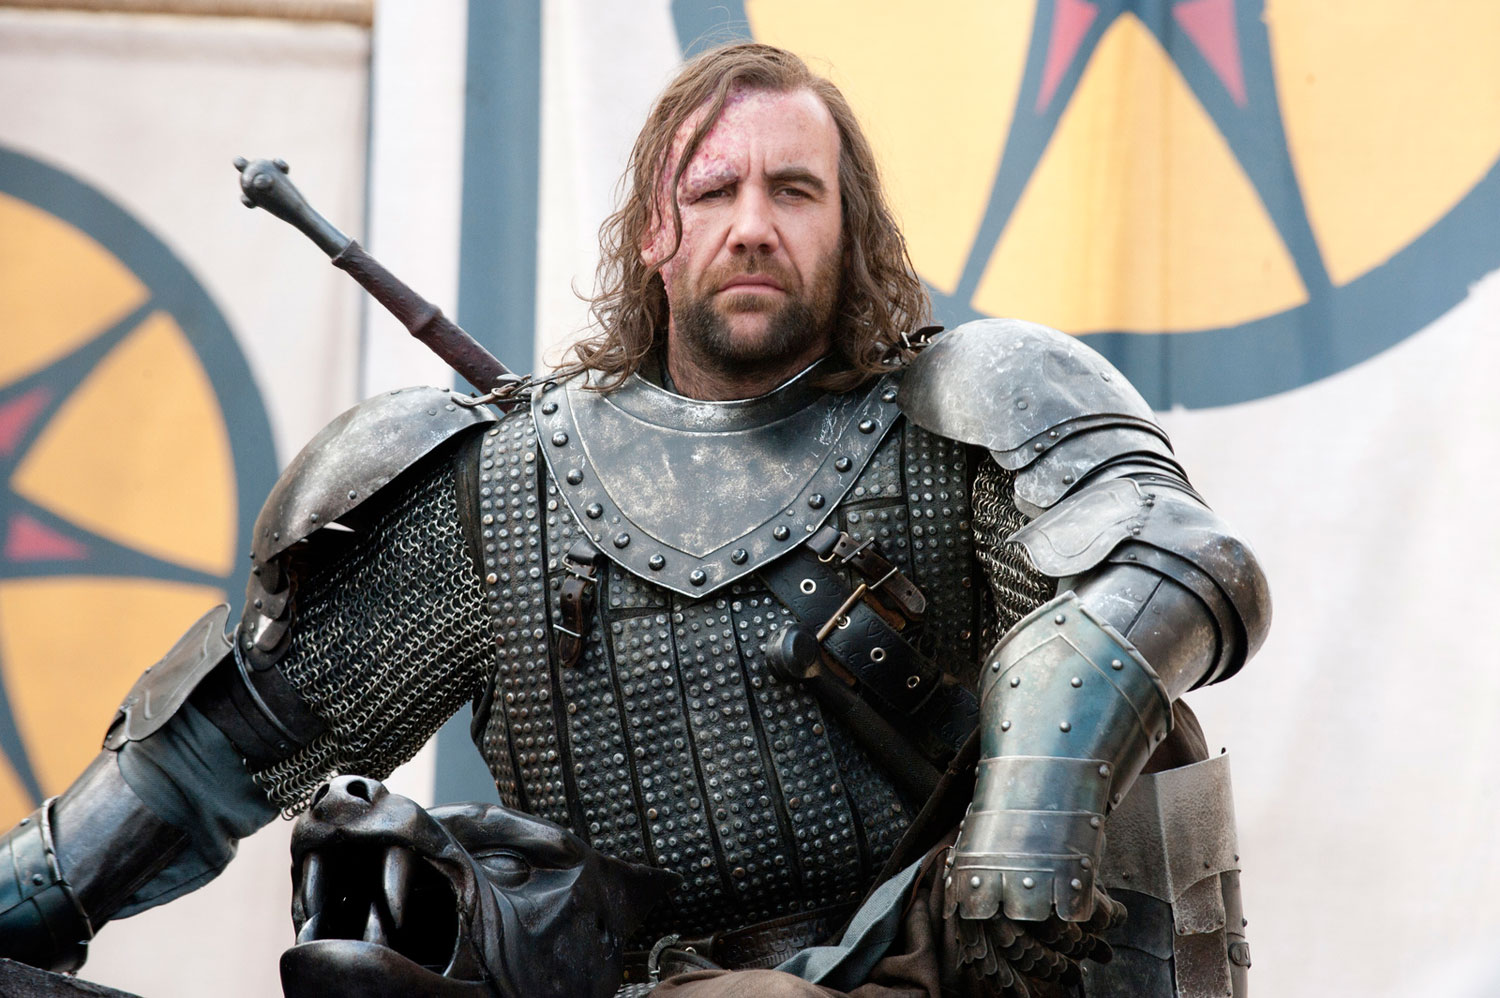 Sandor Clegane, also known as The Hound, became a likeable character during his time spent with Arya Stark but was injured in battle and left on the side of a mountain to die. He is presumed dead.